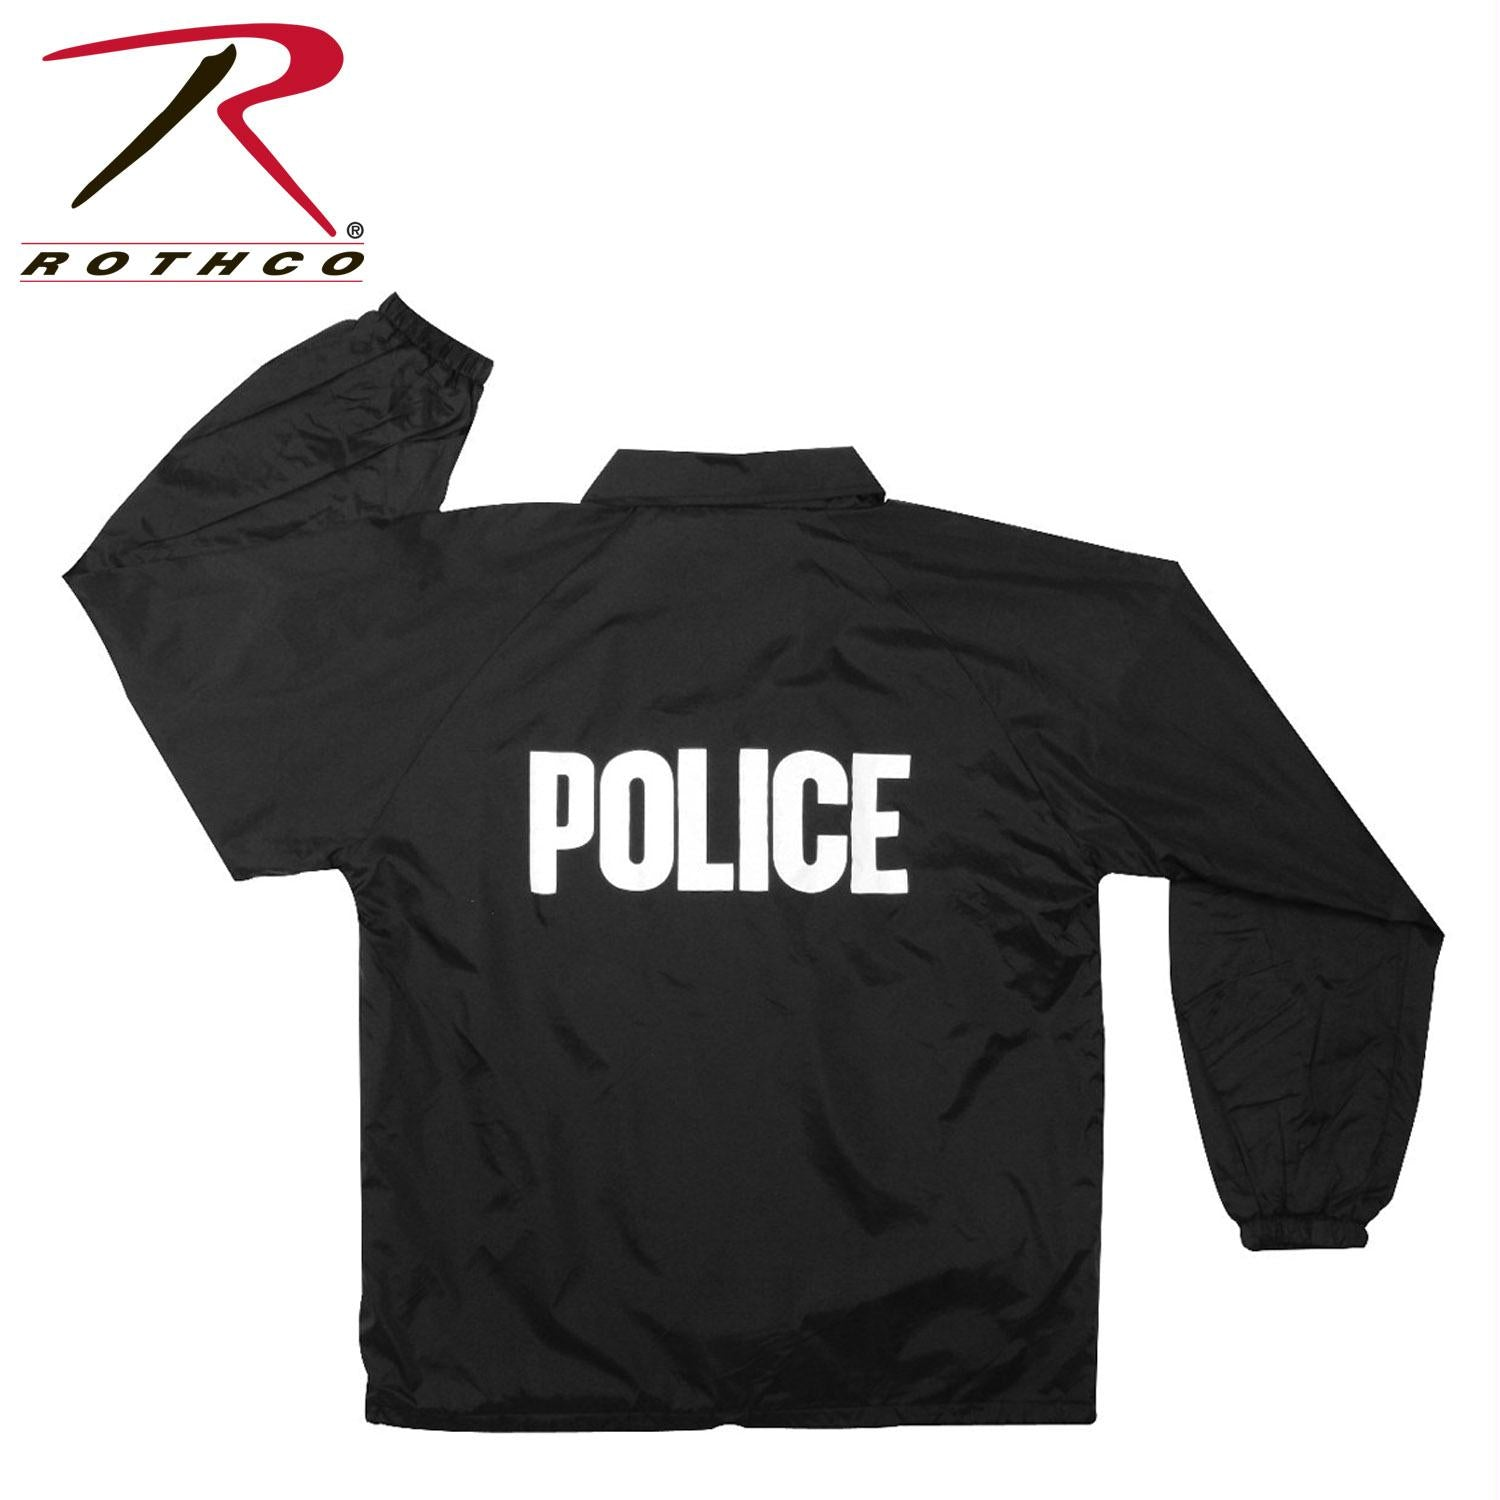 Rothco Lined Coaches Police Jacket - L